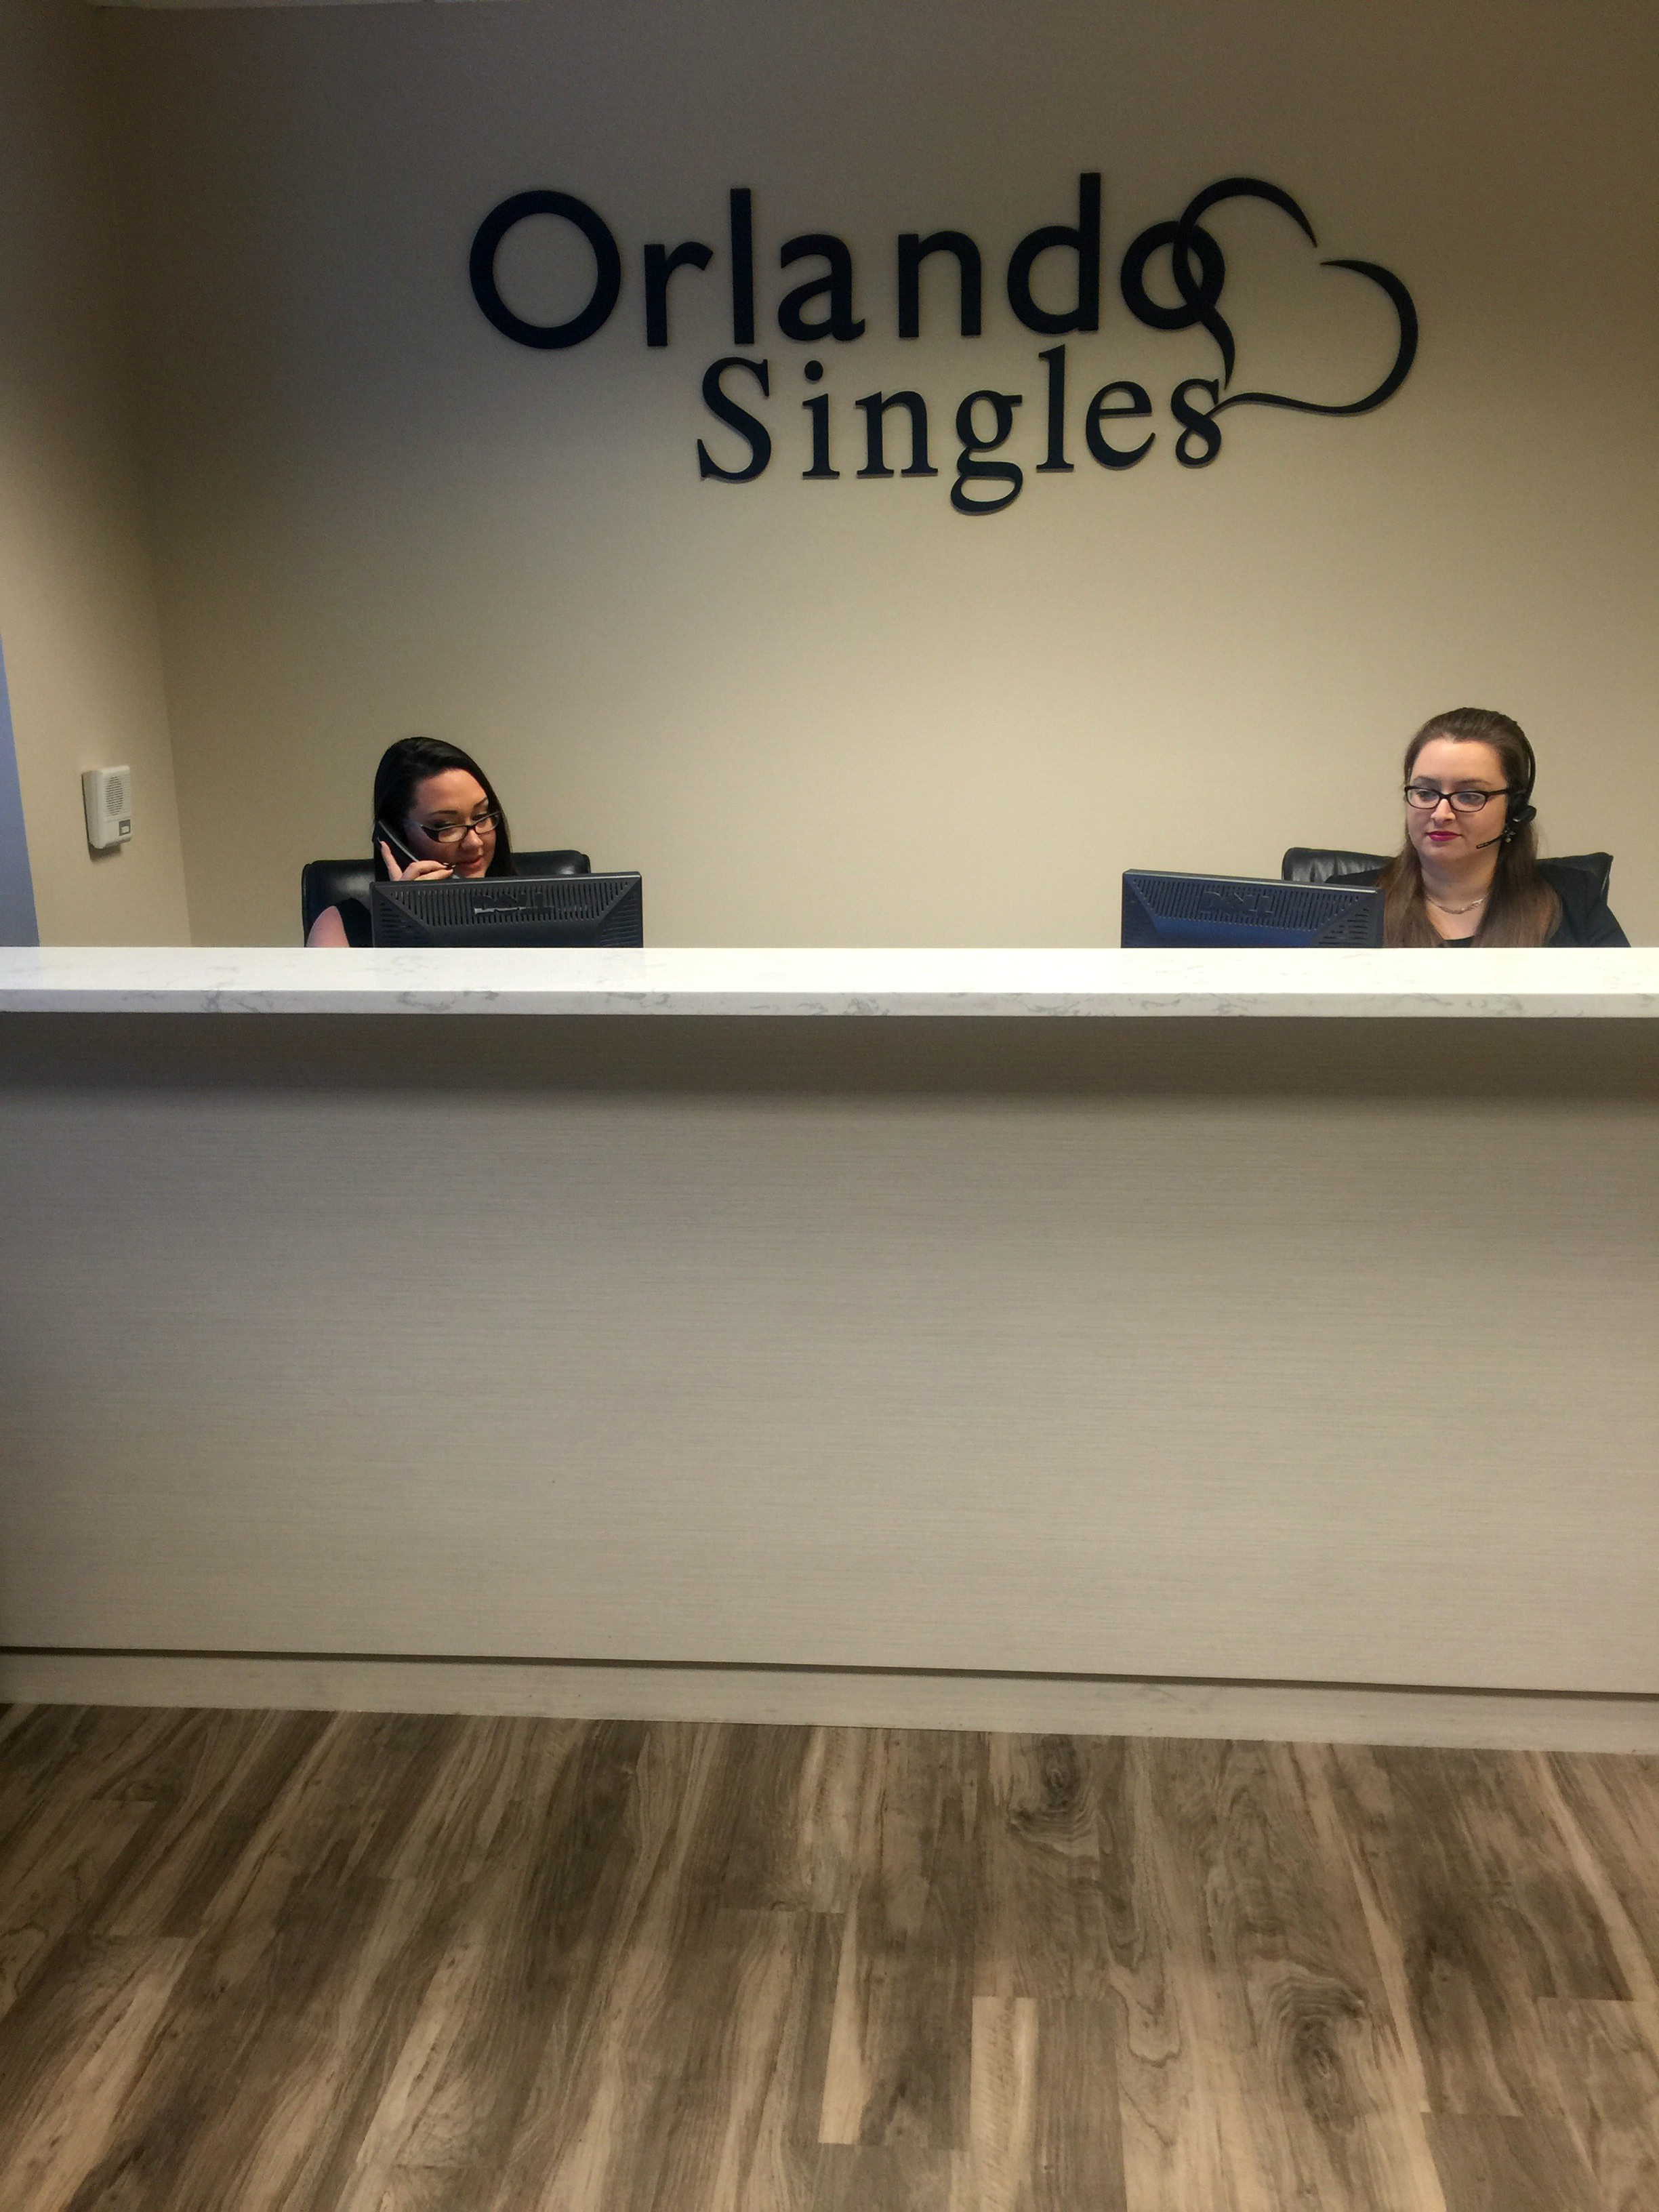 orlando singles Get the latest top events in orlando and central florida, including free events, concerts, festivals and much more.